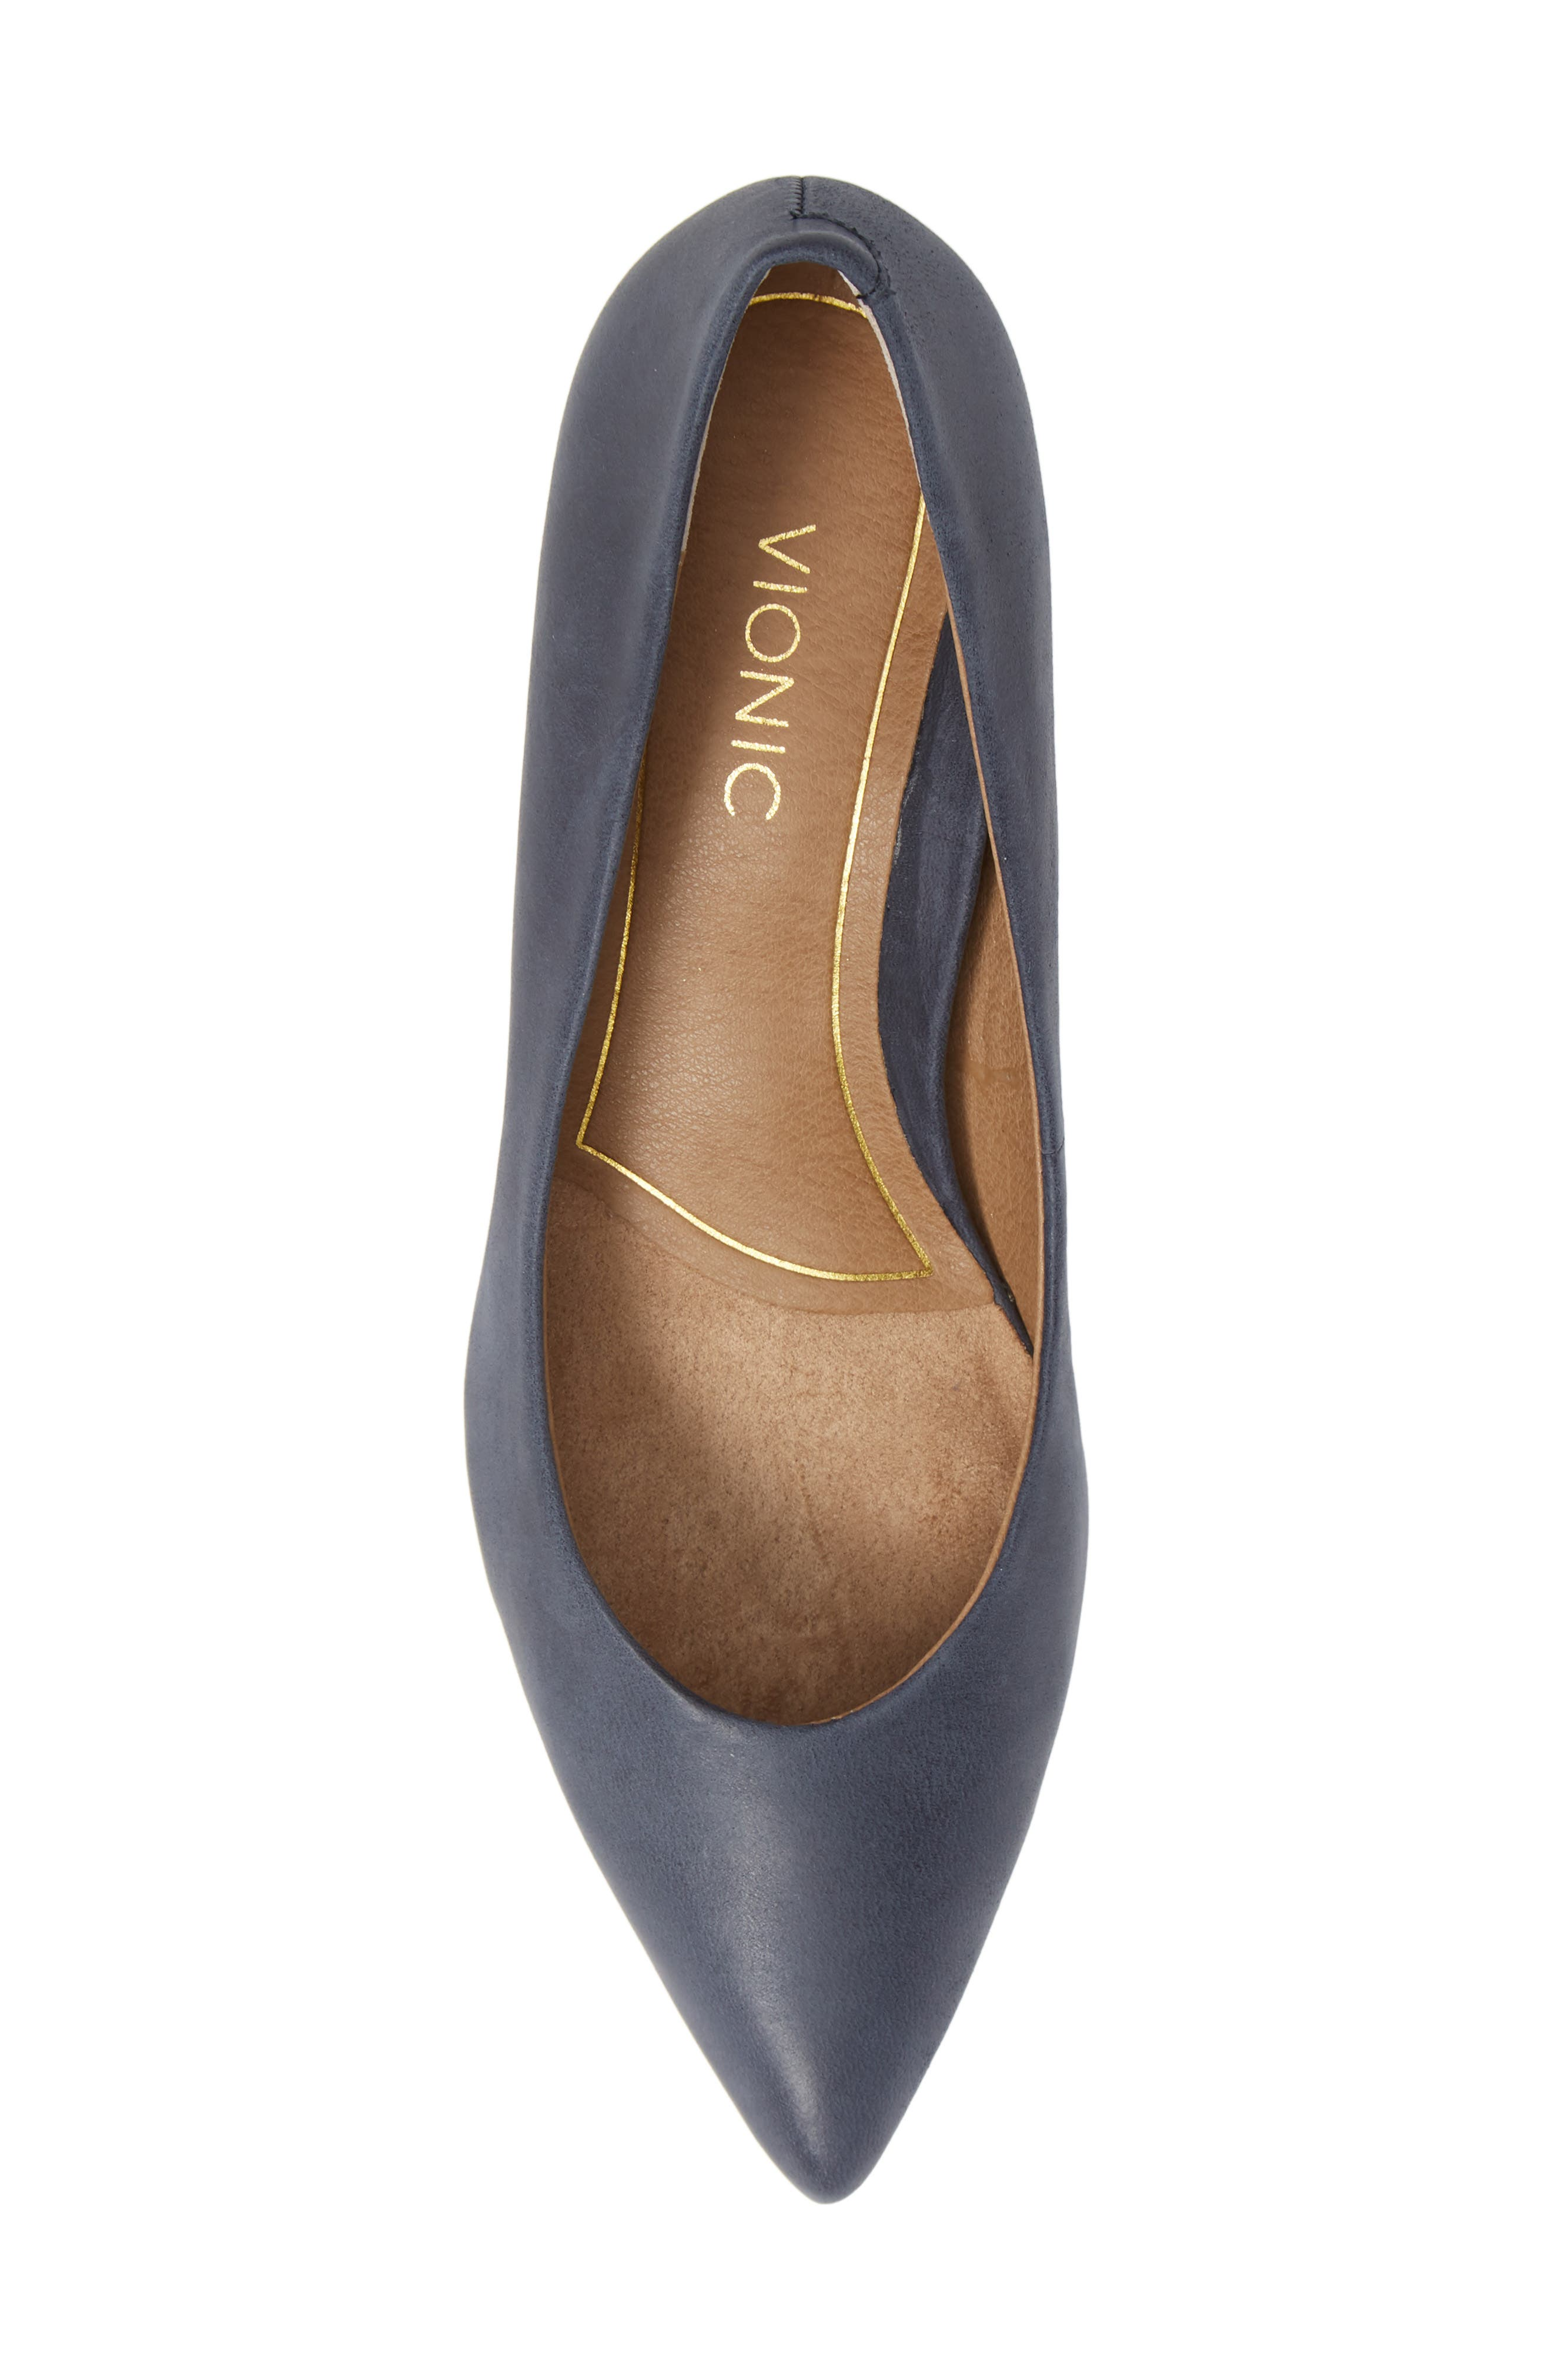 VIONIC, Josie Kitten Heel Pump, Alternate thumbnail 5, color, NAVY LEATHER